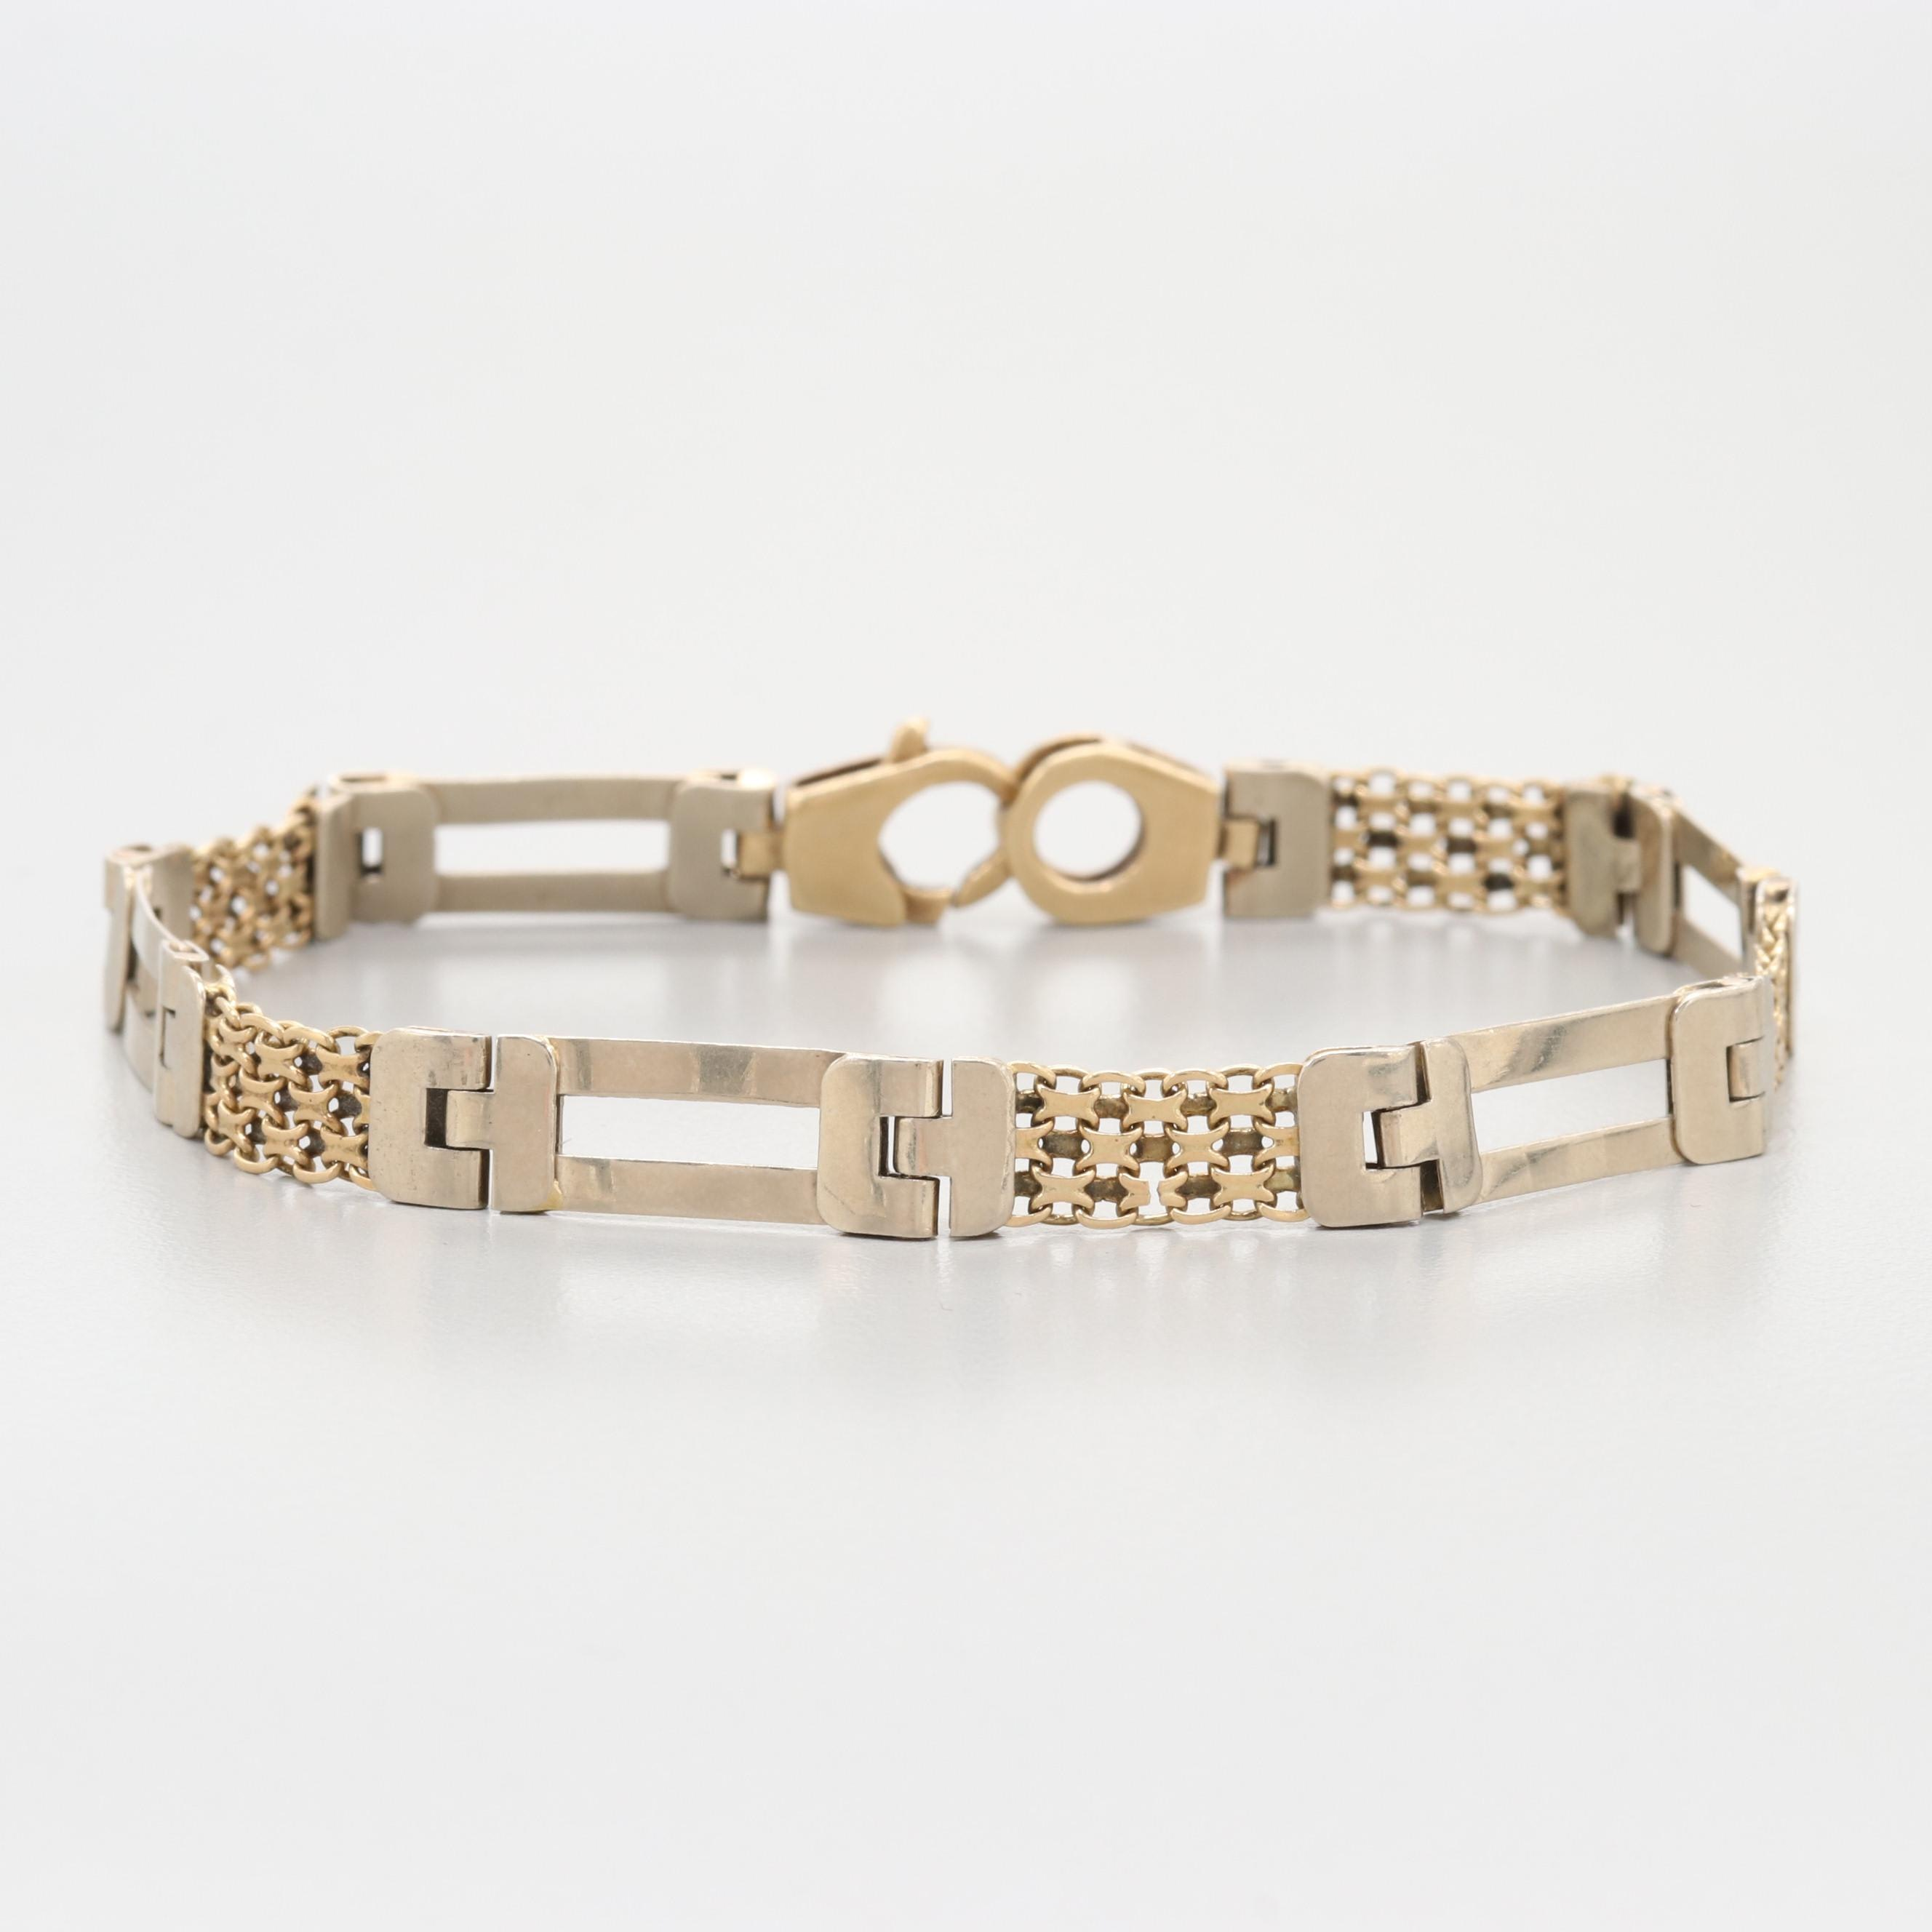 Italian 14K White and Yellow Gold Link Bracelet